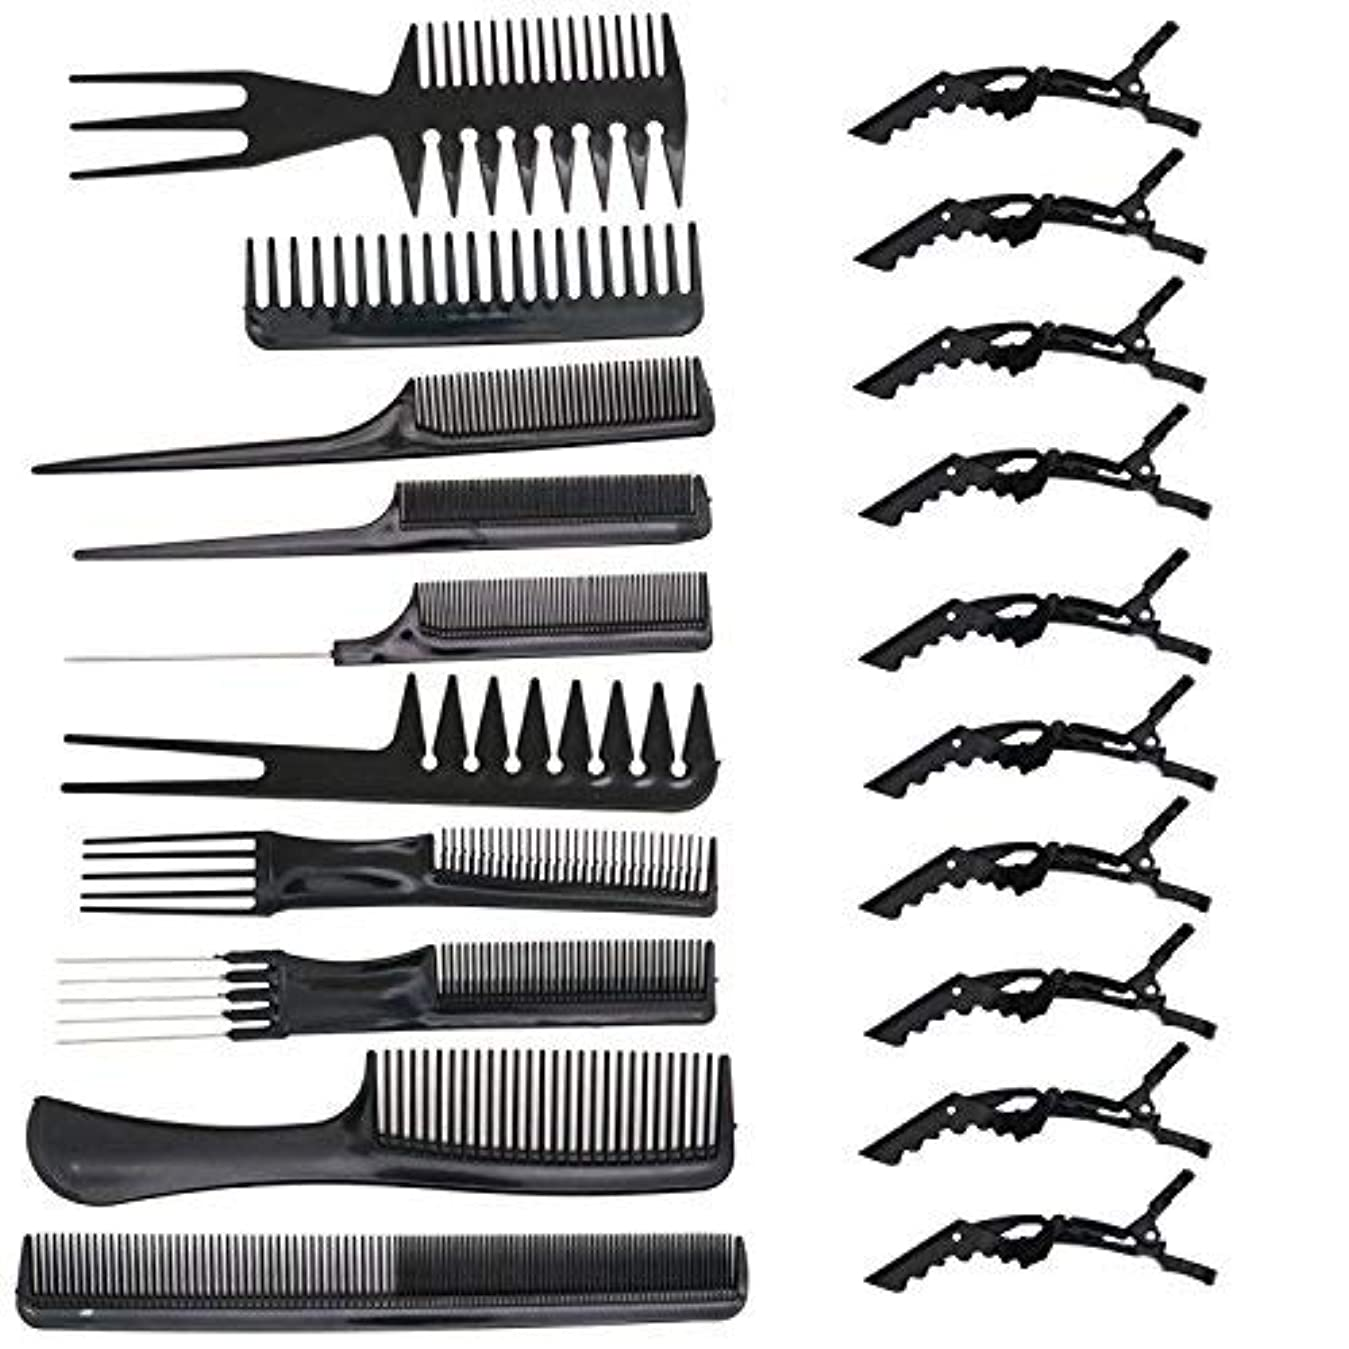 消す進む拒否HUELE 10 Pcs Professional Hair Styling Comb with Styling Clips Hair Salon Styling Barbers Set Kit [並行輸入品]